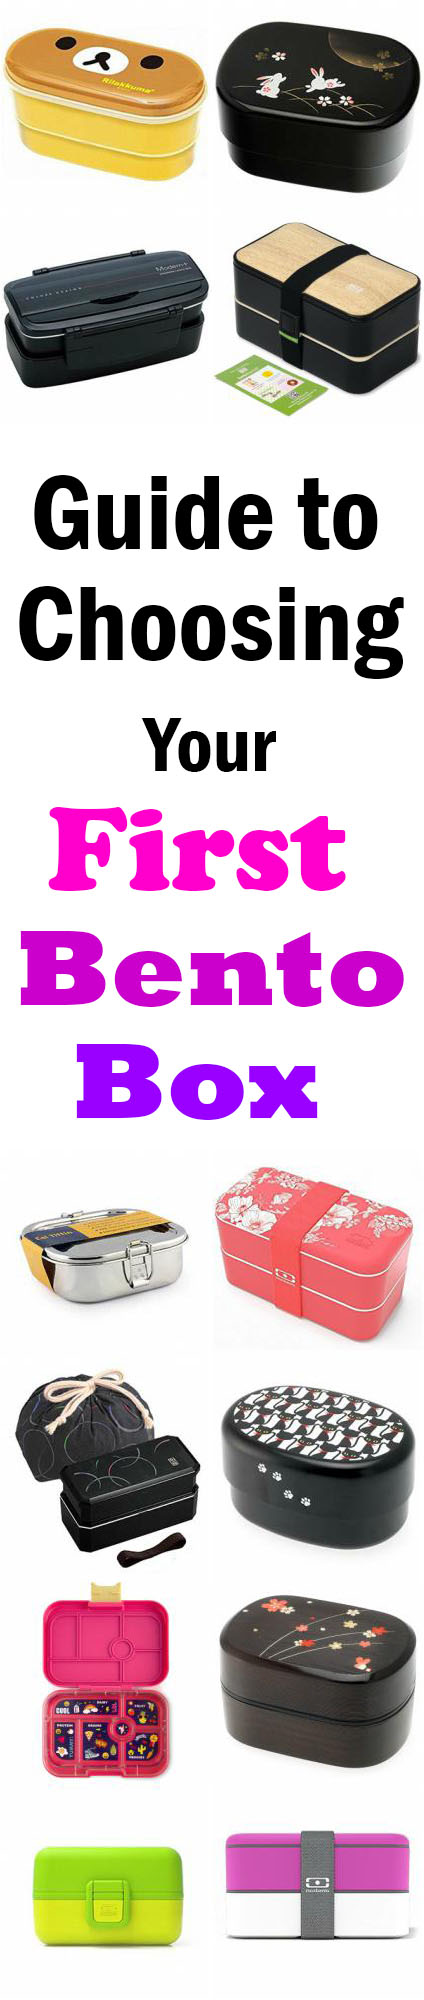 With over 12 different bento boxes to choose from, this is THE ultimate guide to choosing your very first bento box! Guaranteed to have the perfect match for your specific needs, no matter your age or gender. A great selection of traditional, modern, kid-friendly, low-maintenance, budget-friendly, and more! Get the full guide at loveatfirstbento.com